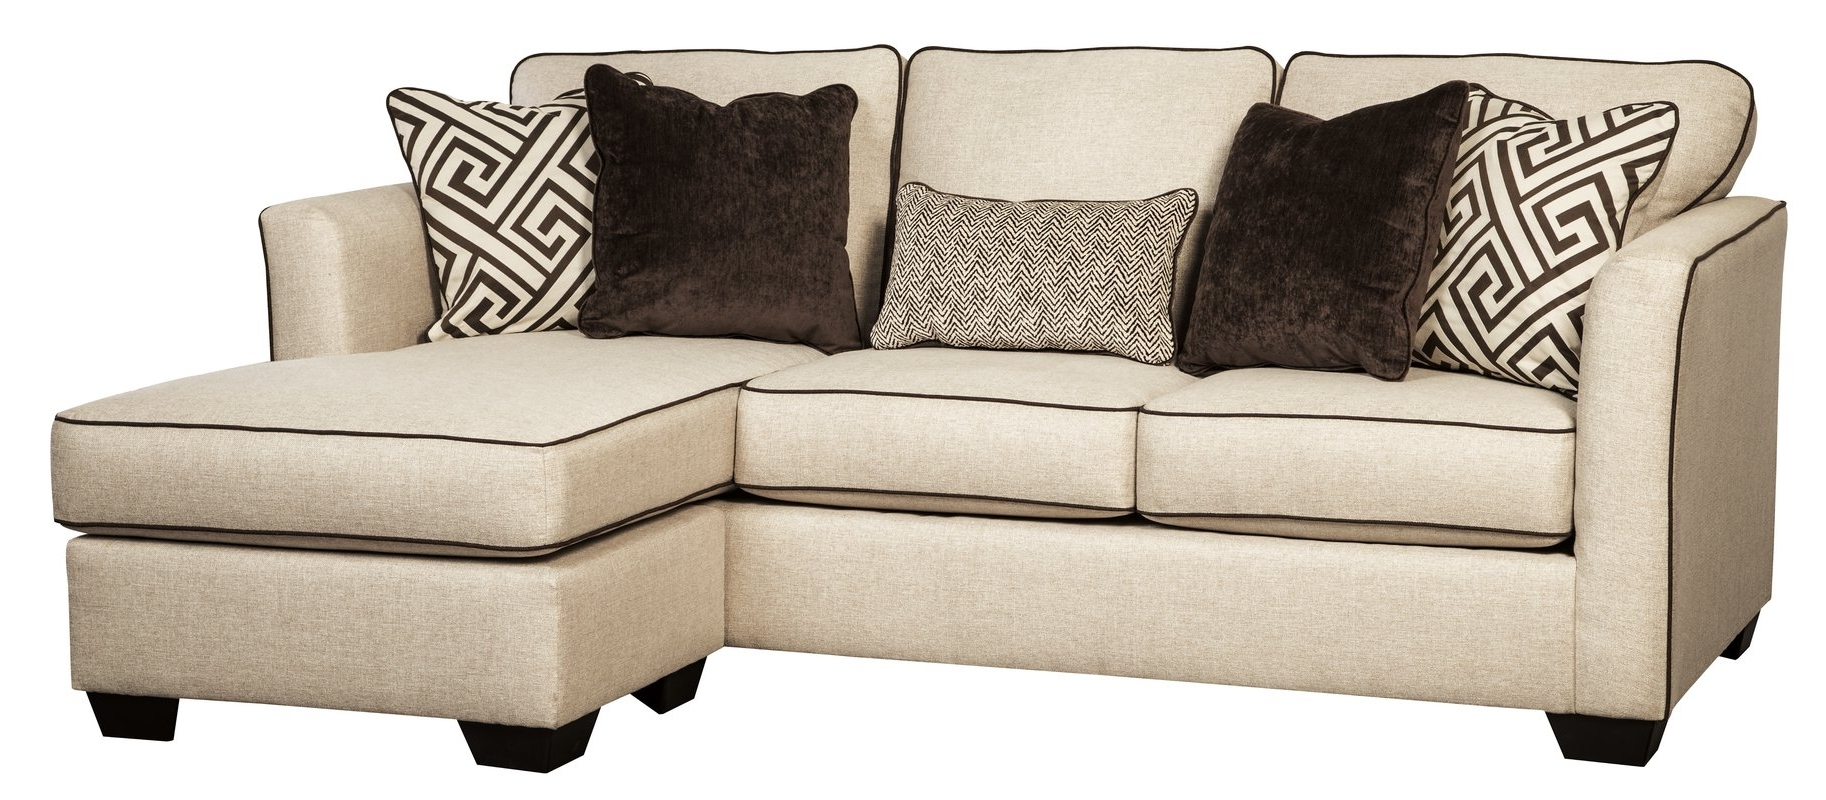 Wayfair Pertaining To Chaise Sofas (View 9 of 15)